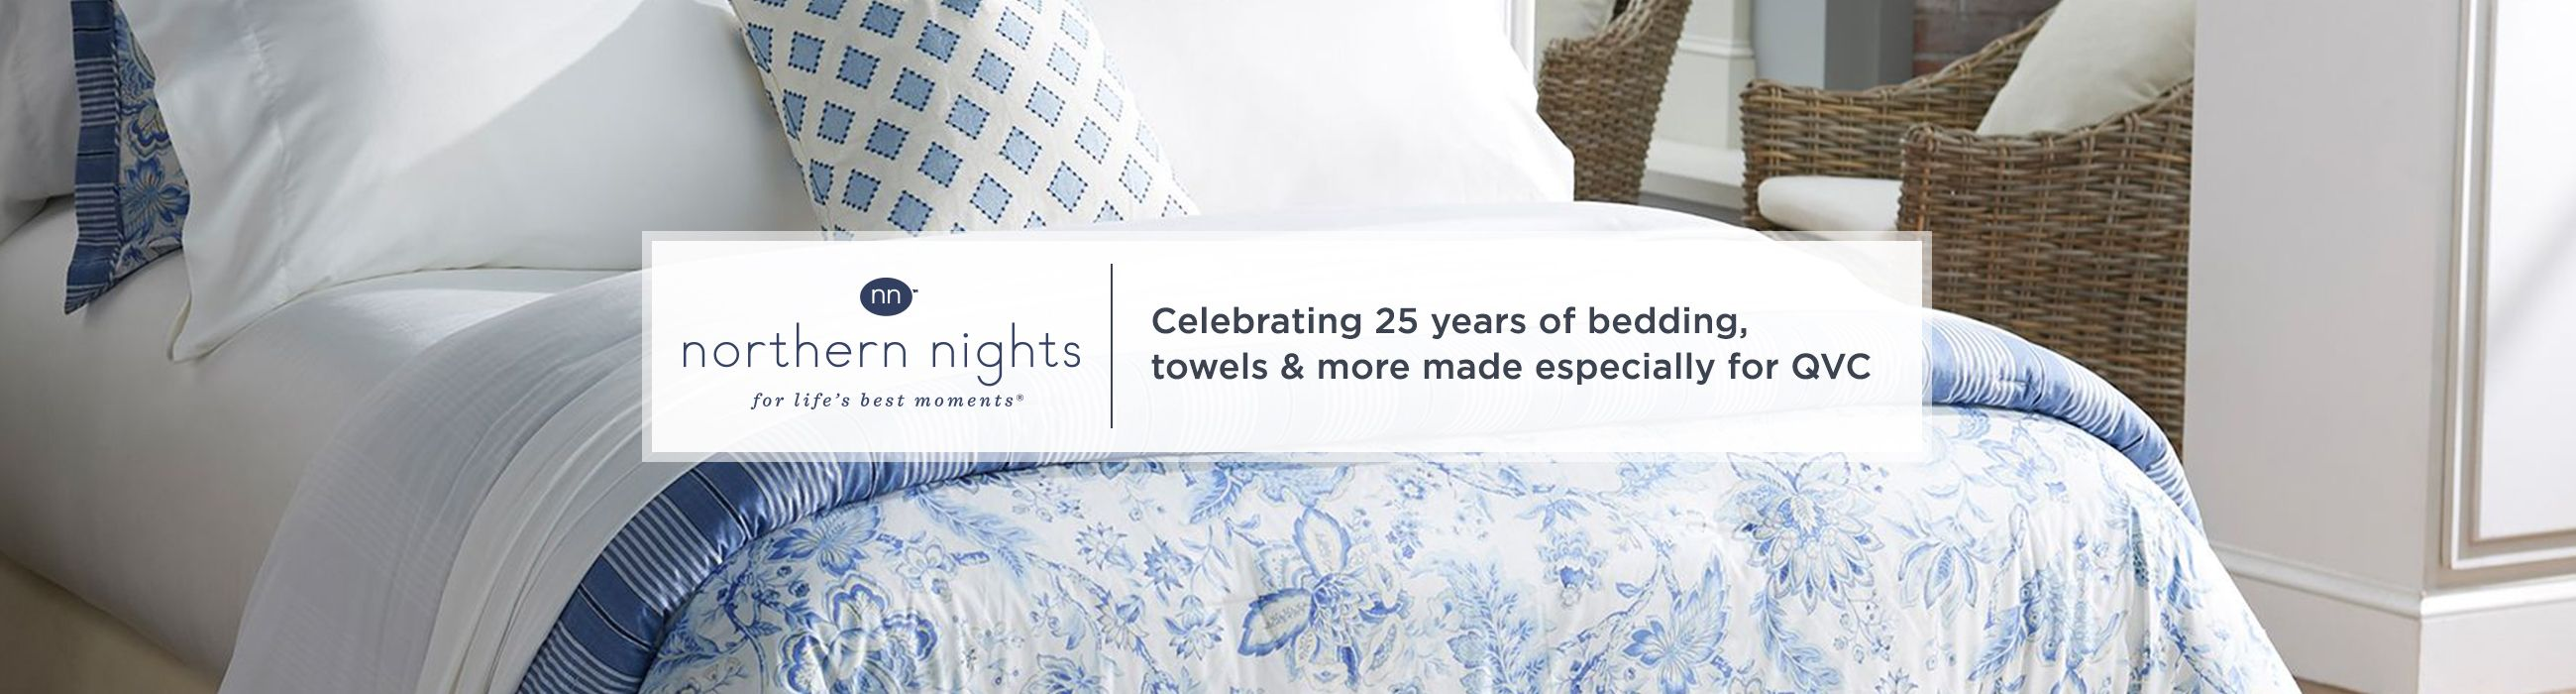 Northern Nights.  Celebrating 25 years of  bedding, towels & more made especially for QVC.